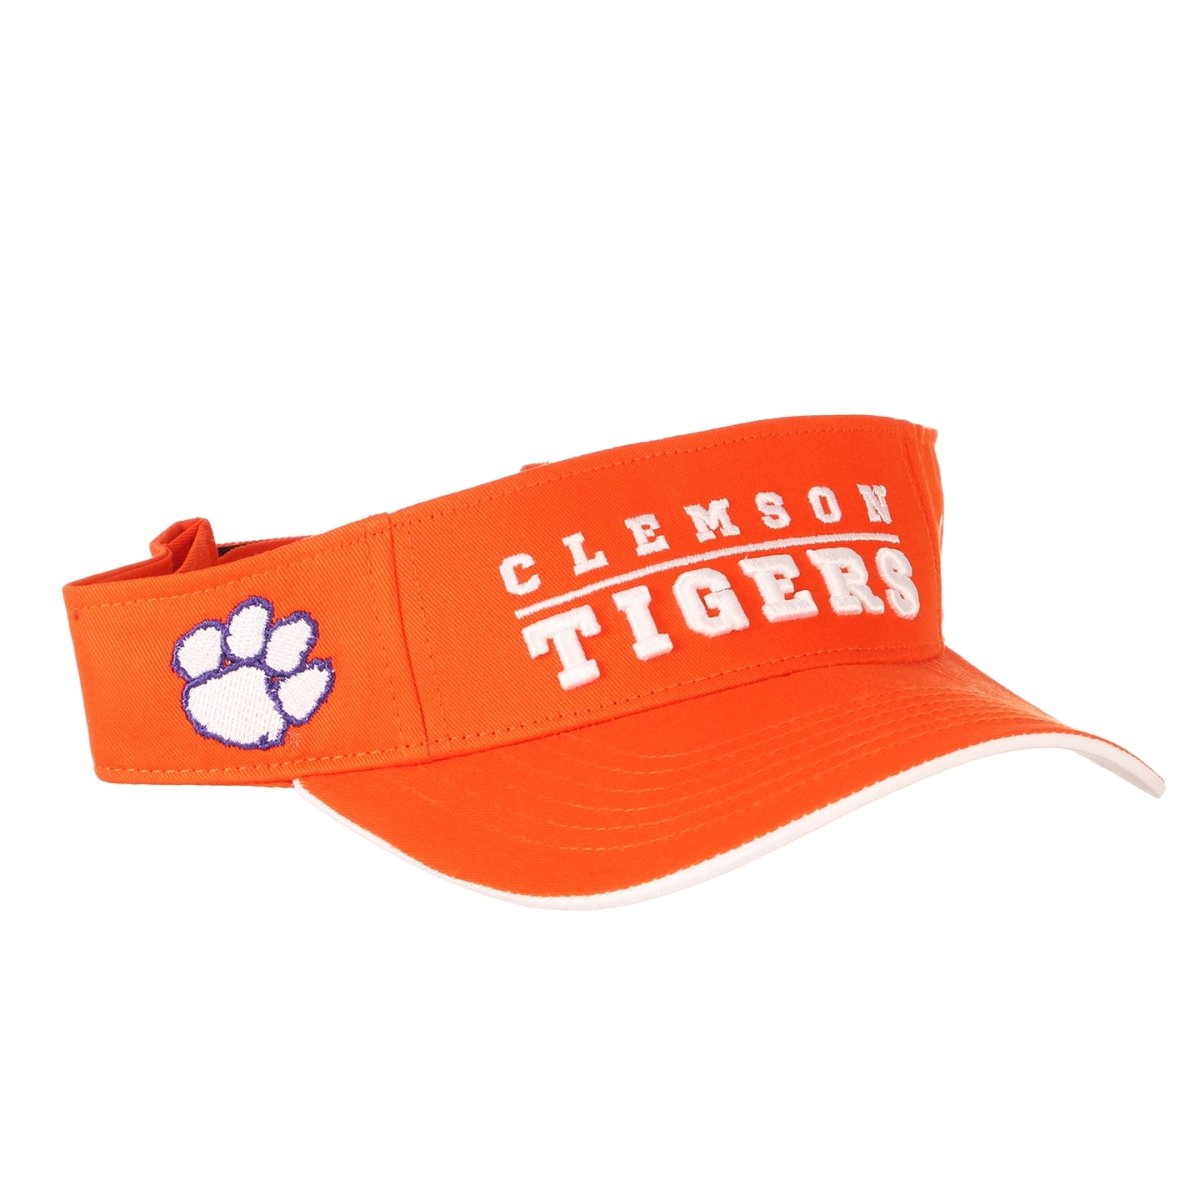 Clemson Tigers Gilmore Orange and White Adjustable Visor - Mr. Knickerbocker